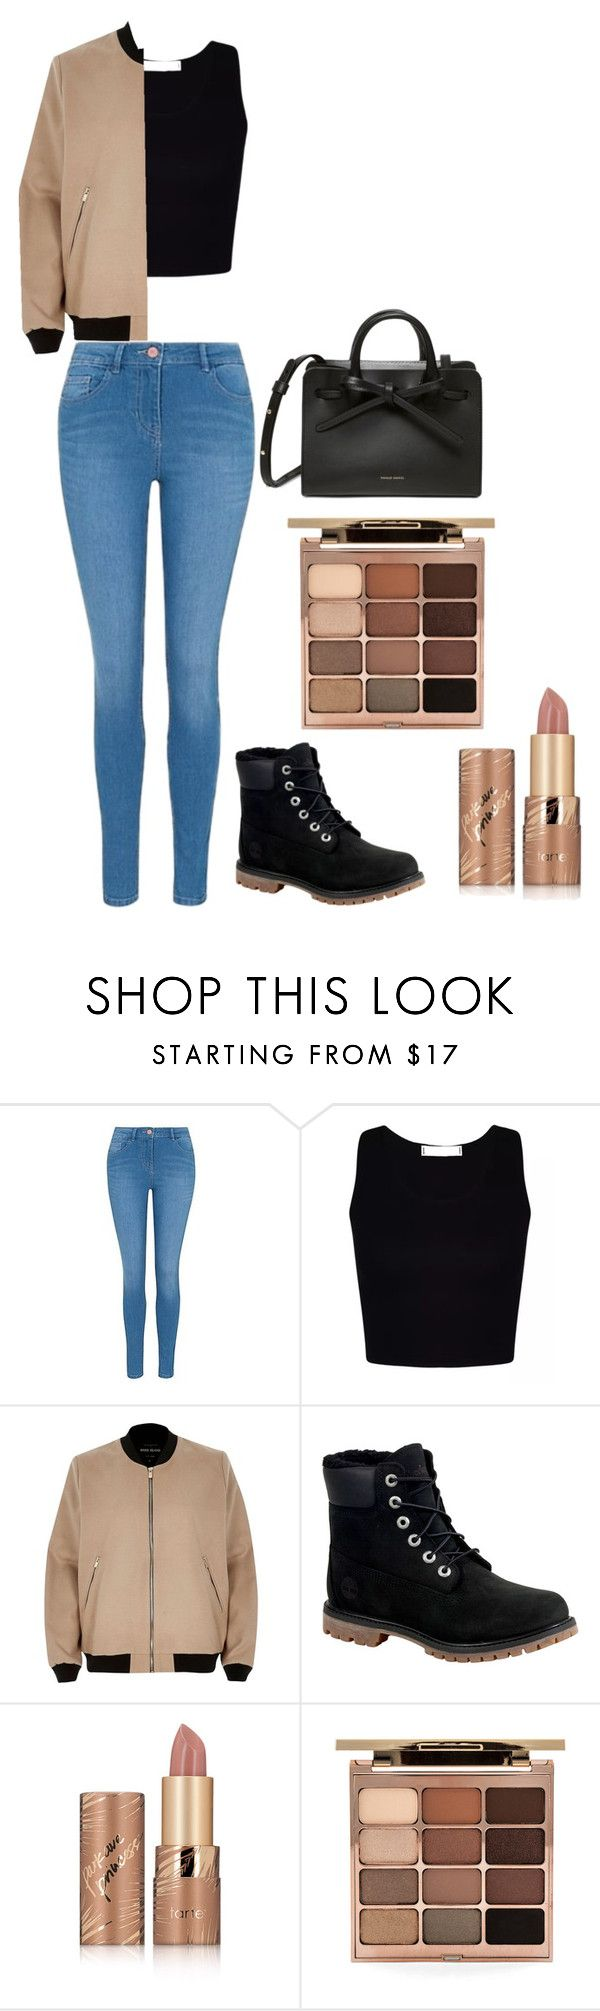 """""""How to wear a bomber"""" by ifrancesconi on Polyvore featuring George, River Island, Timberland, tarte, Stila, casual, teen, teenstyle and teenfashion"""